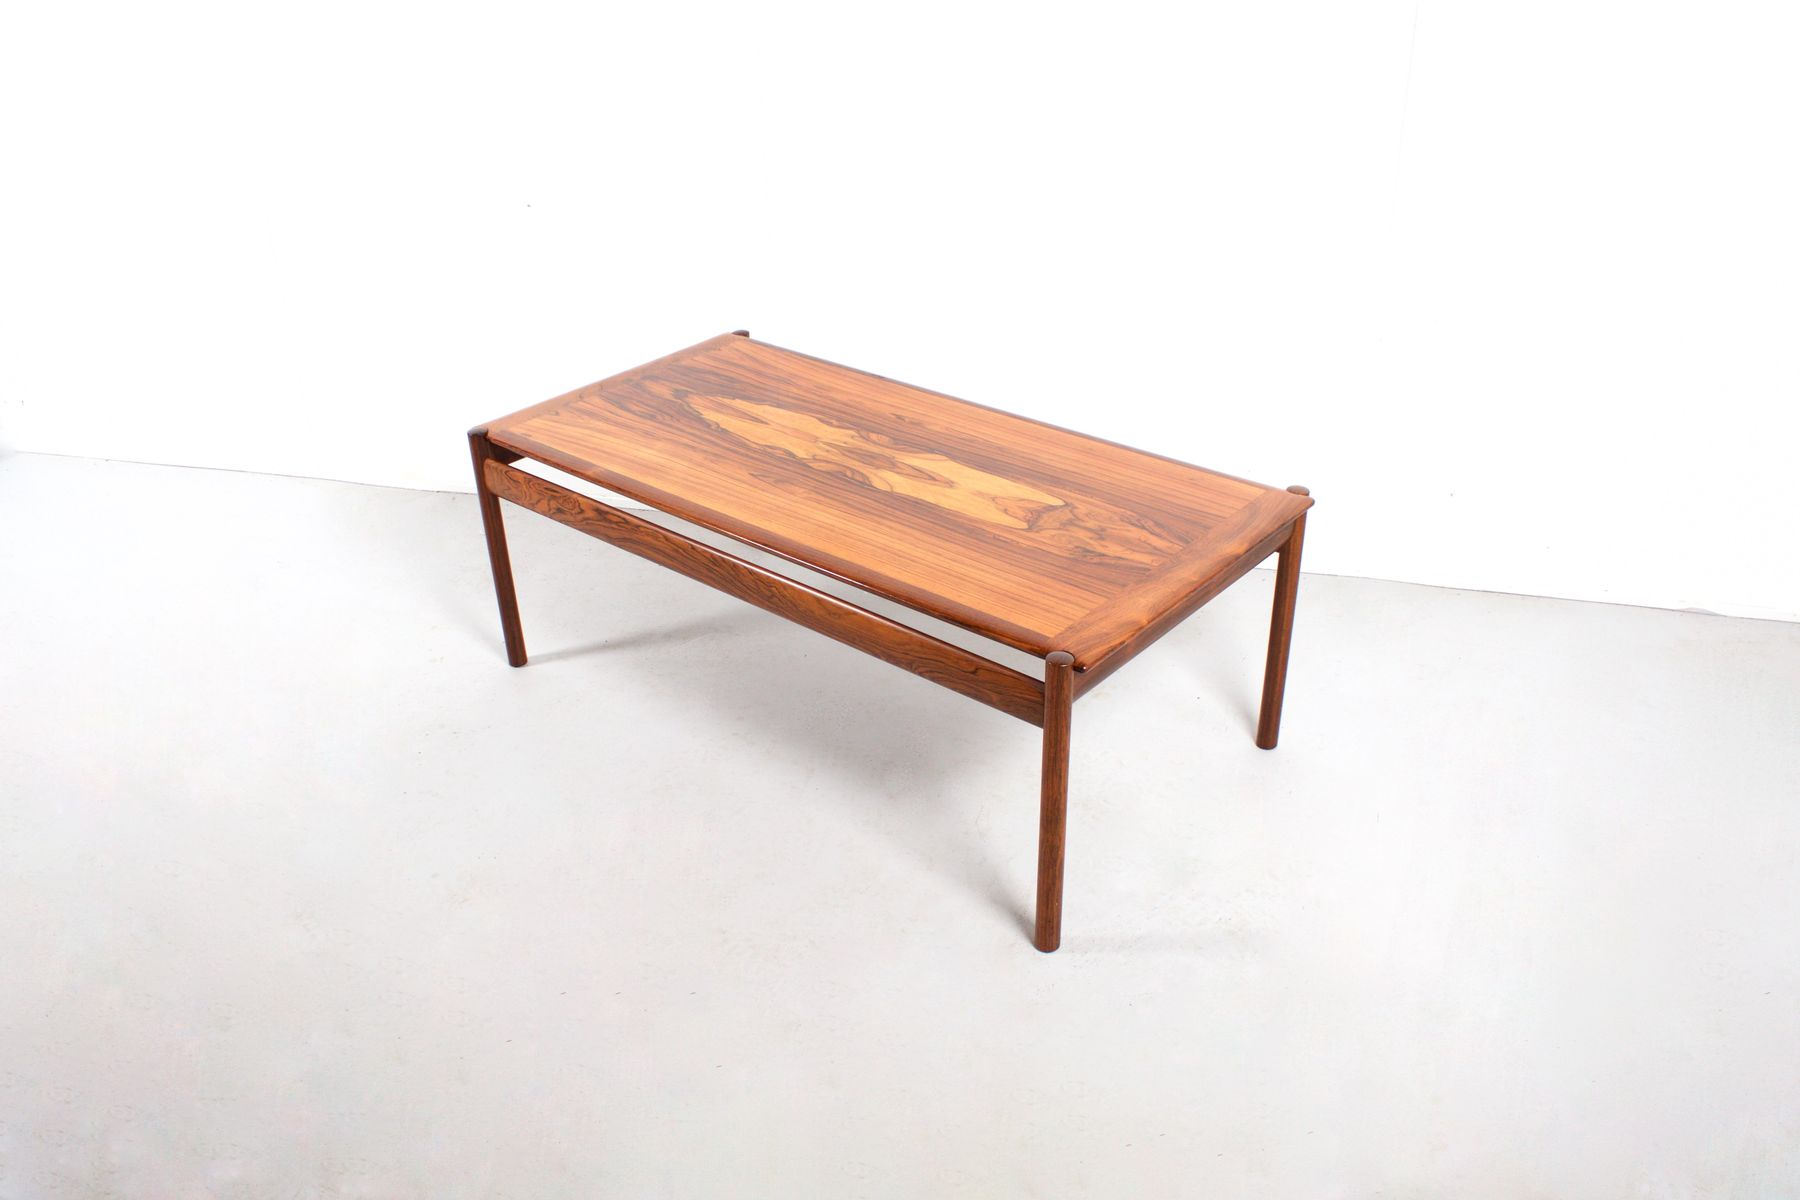 Rosewood Coffee Table By Sven Ivar Dysthe For Dokka M Bler 1960s For Sale At Pamono